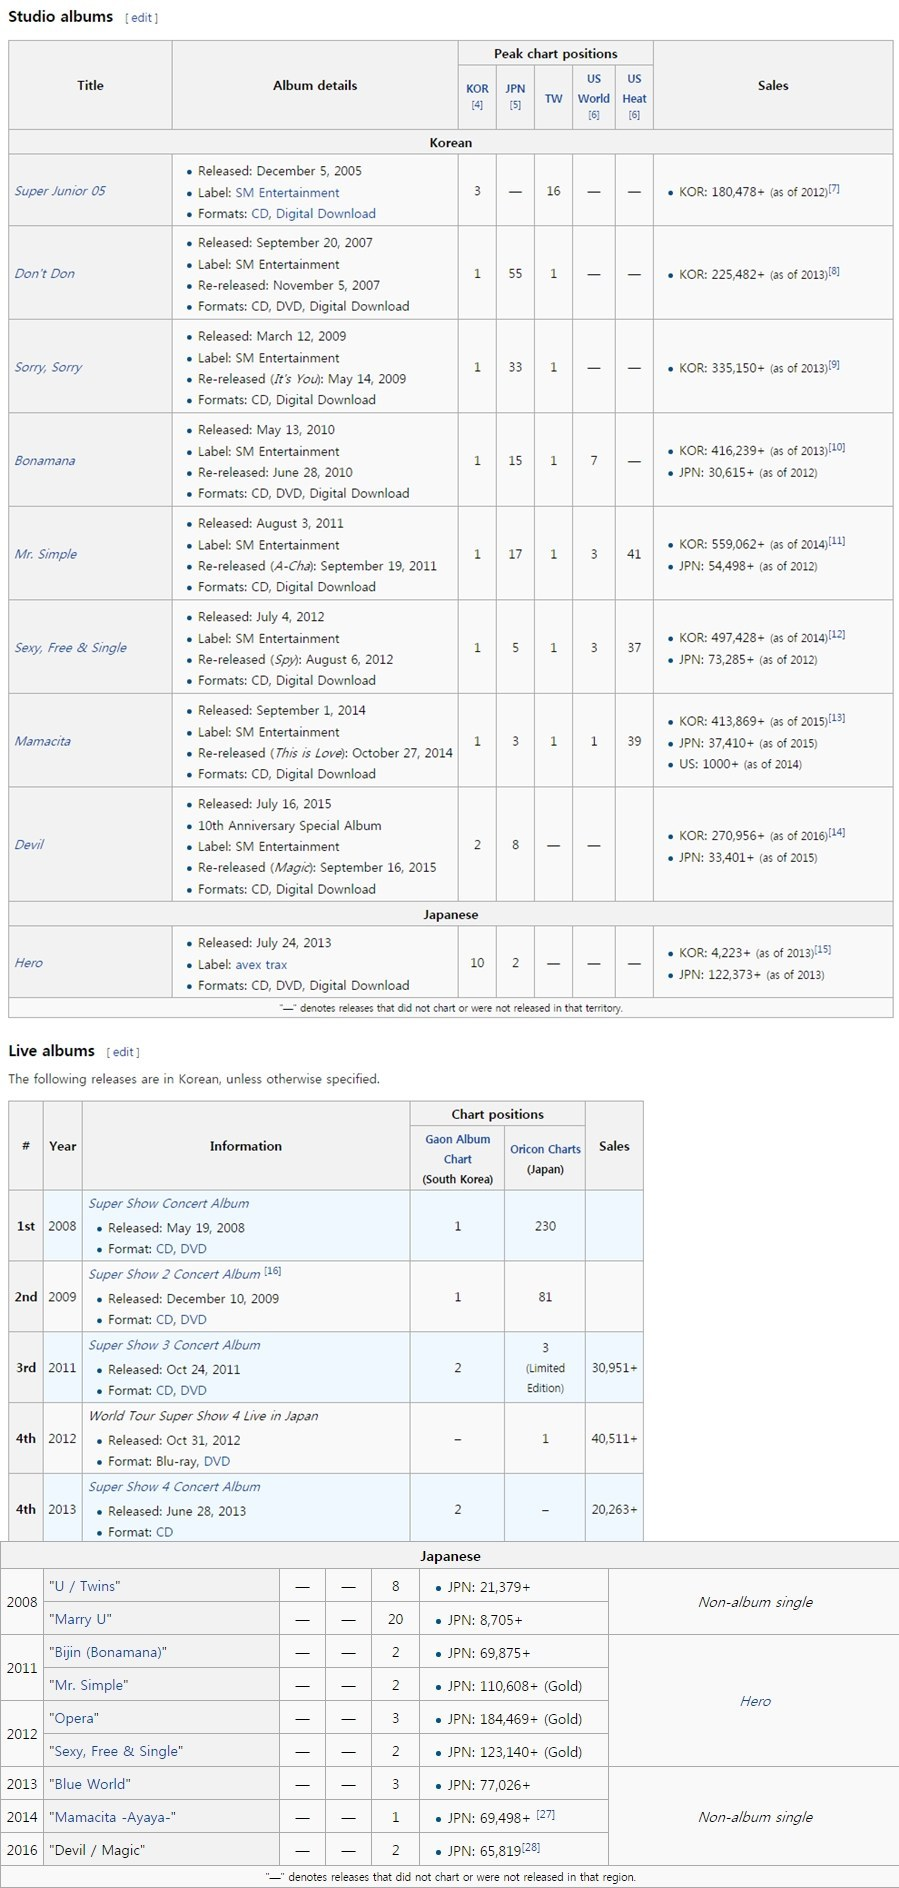 Image: Combined sales from Korea and Japanese album sales for Super Junior